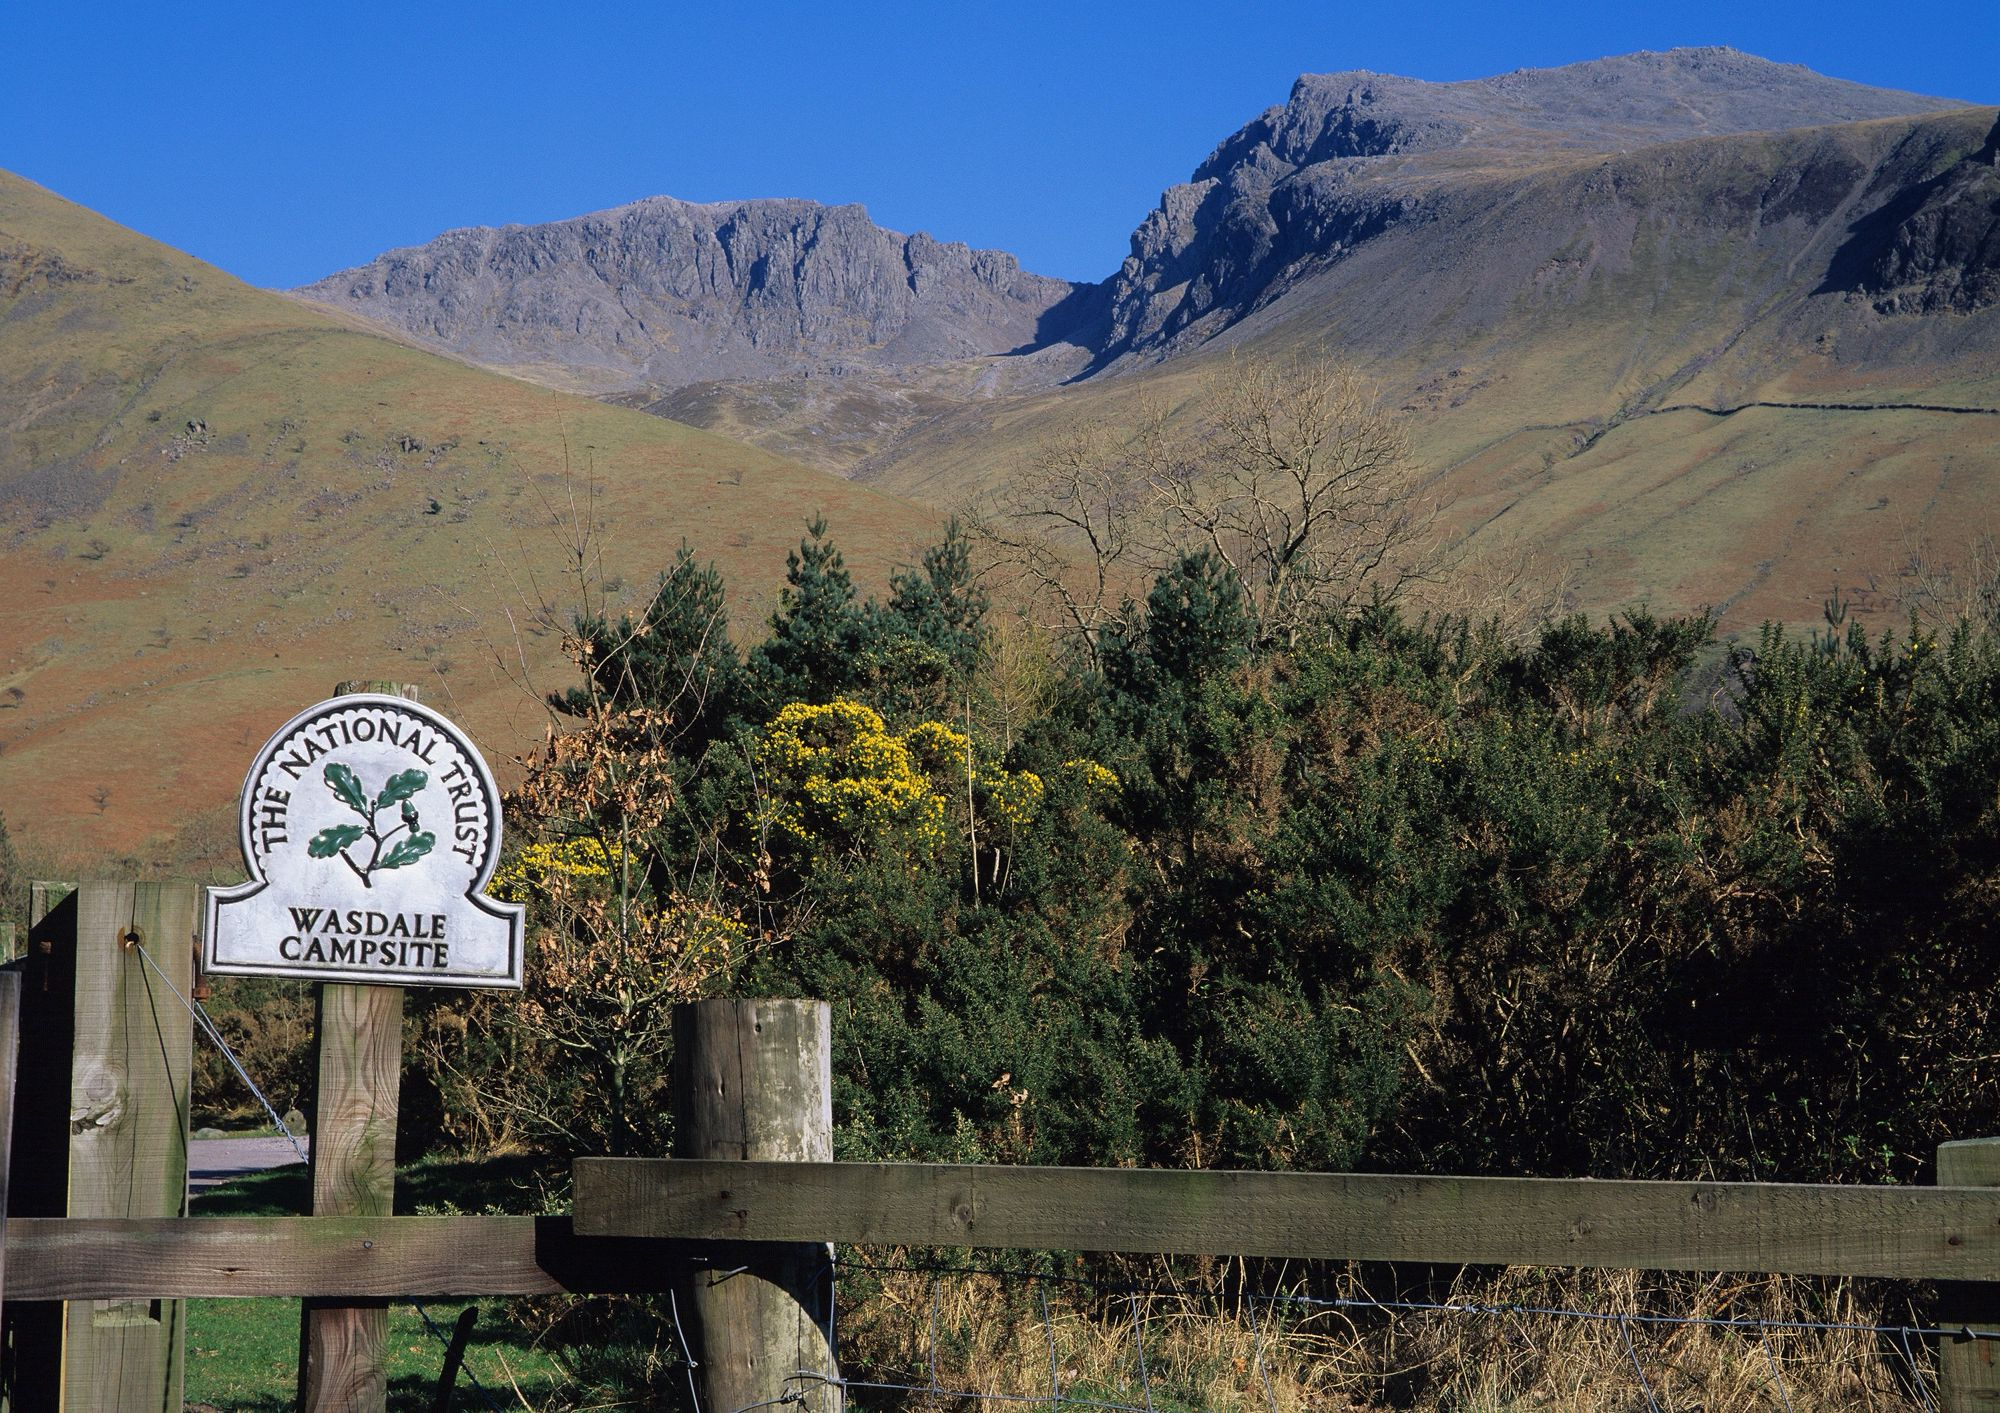 The National Trust Campsites – Campsites owned and run by the National Trust – Cool Camping